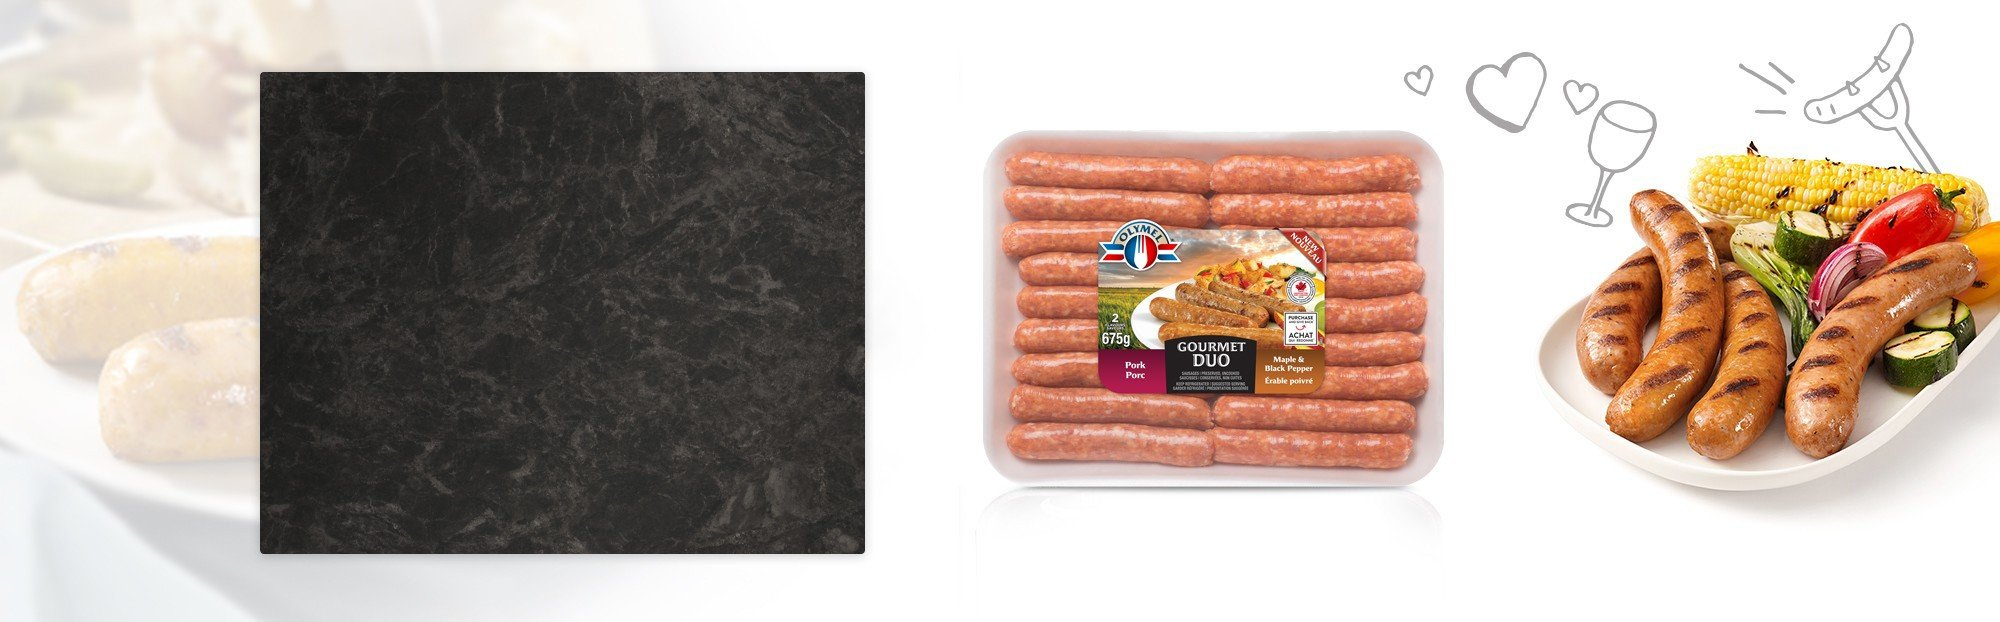 Pork & Maple and Black pepper Sausages